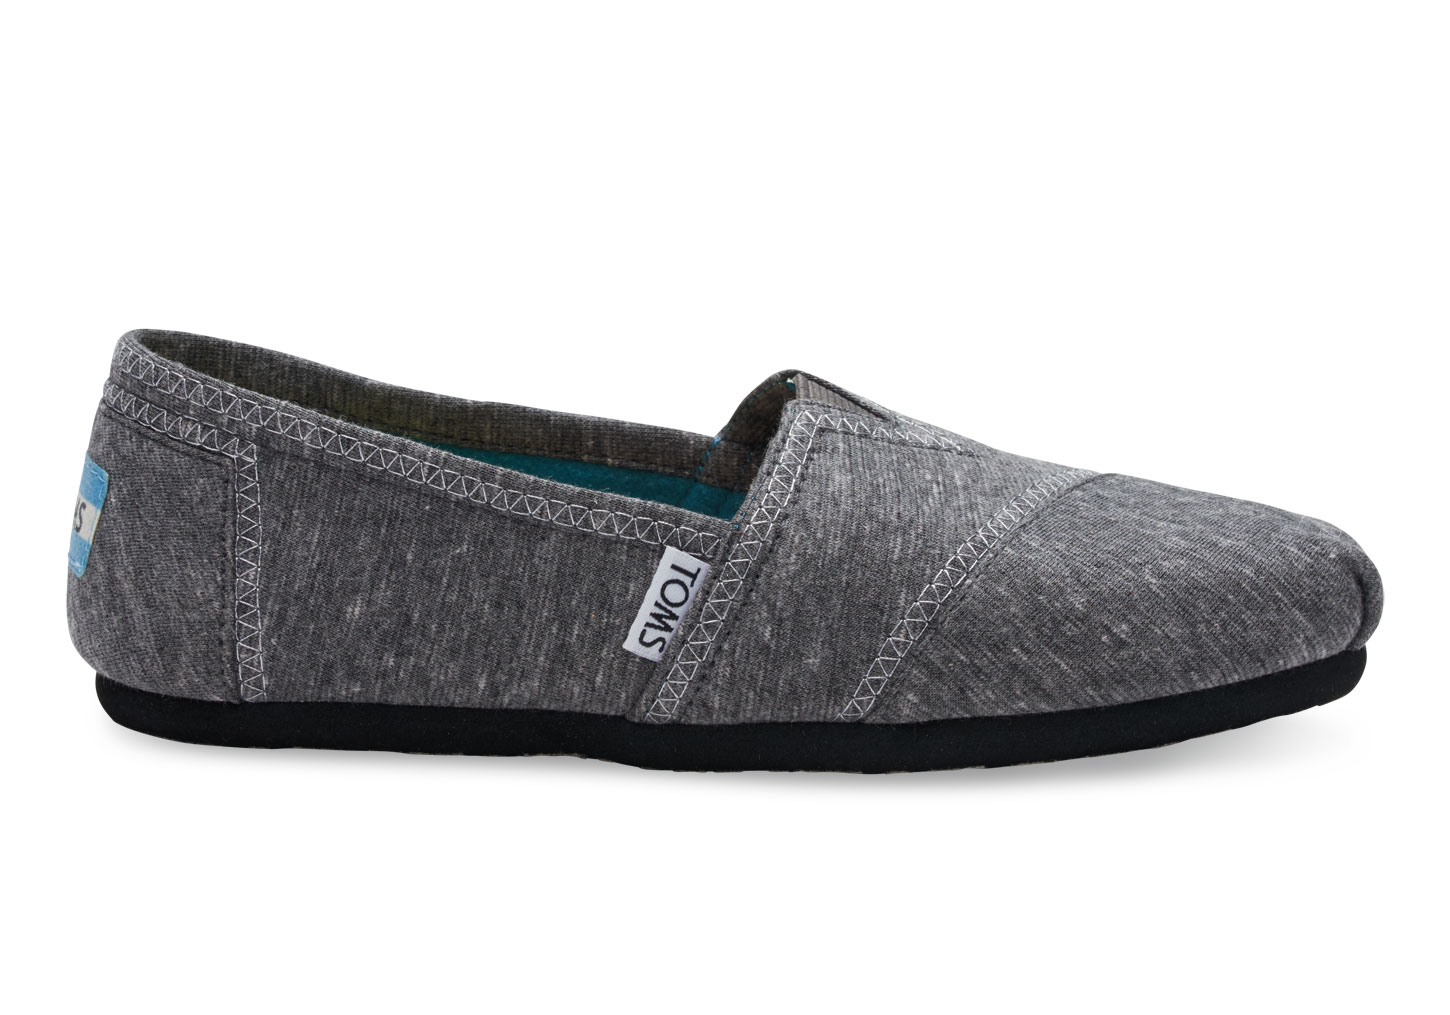 toms shoes video case | best deals |🔥 over 3,400 styles available free shipping buy kids toms shoes,over 3,400 styles available free shipping discount today.